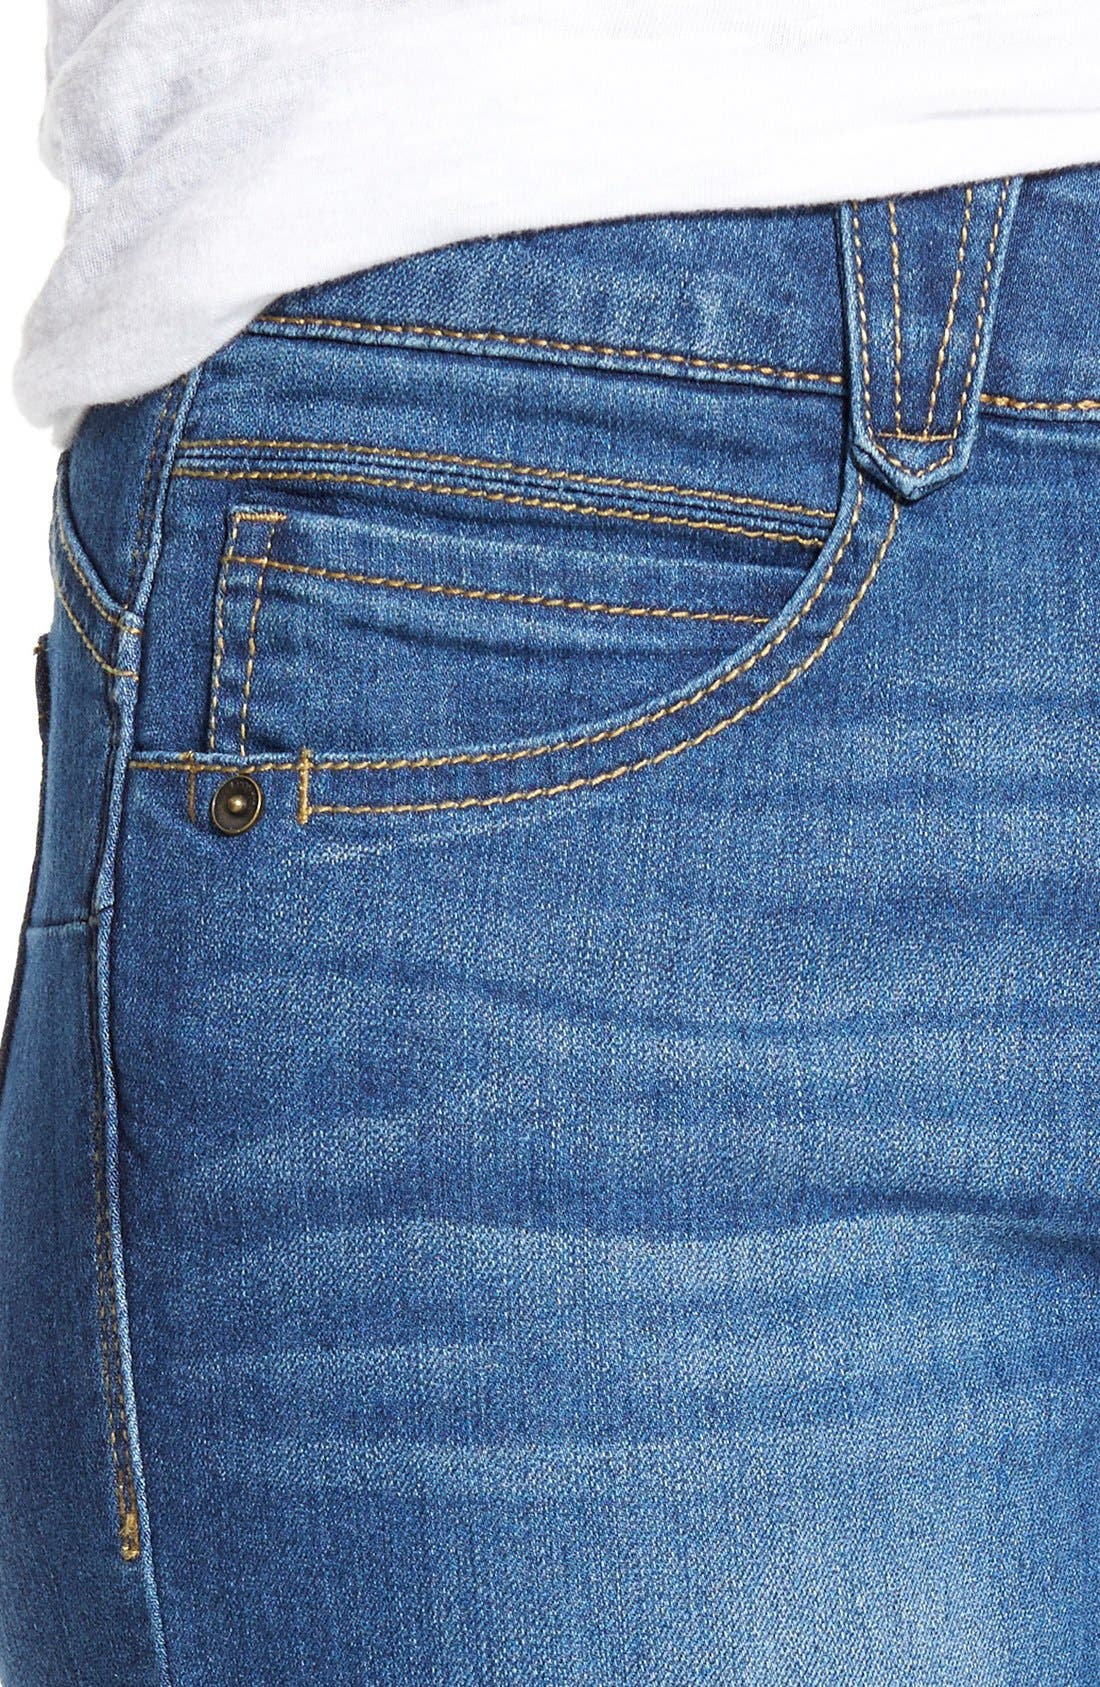 Alternate Image 4  - Wit & Wisdom 'Ab-solution' Booty Lift Stretch Skinny Jeans (Nordstrom Exclusive)